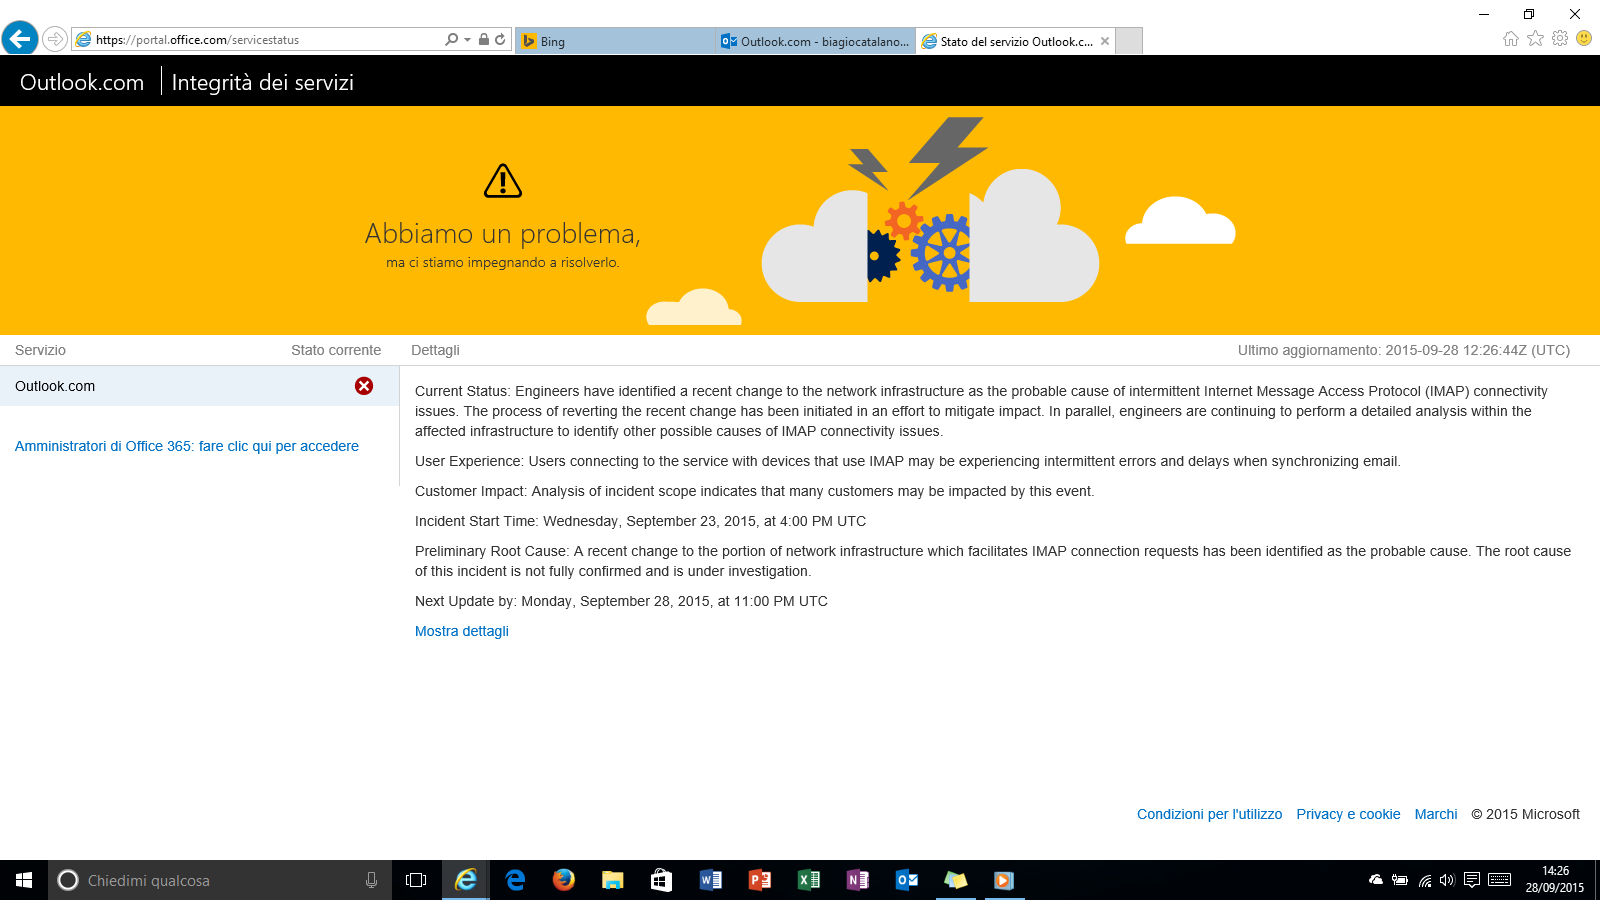 Outlook.com offline